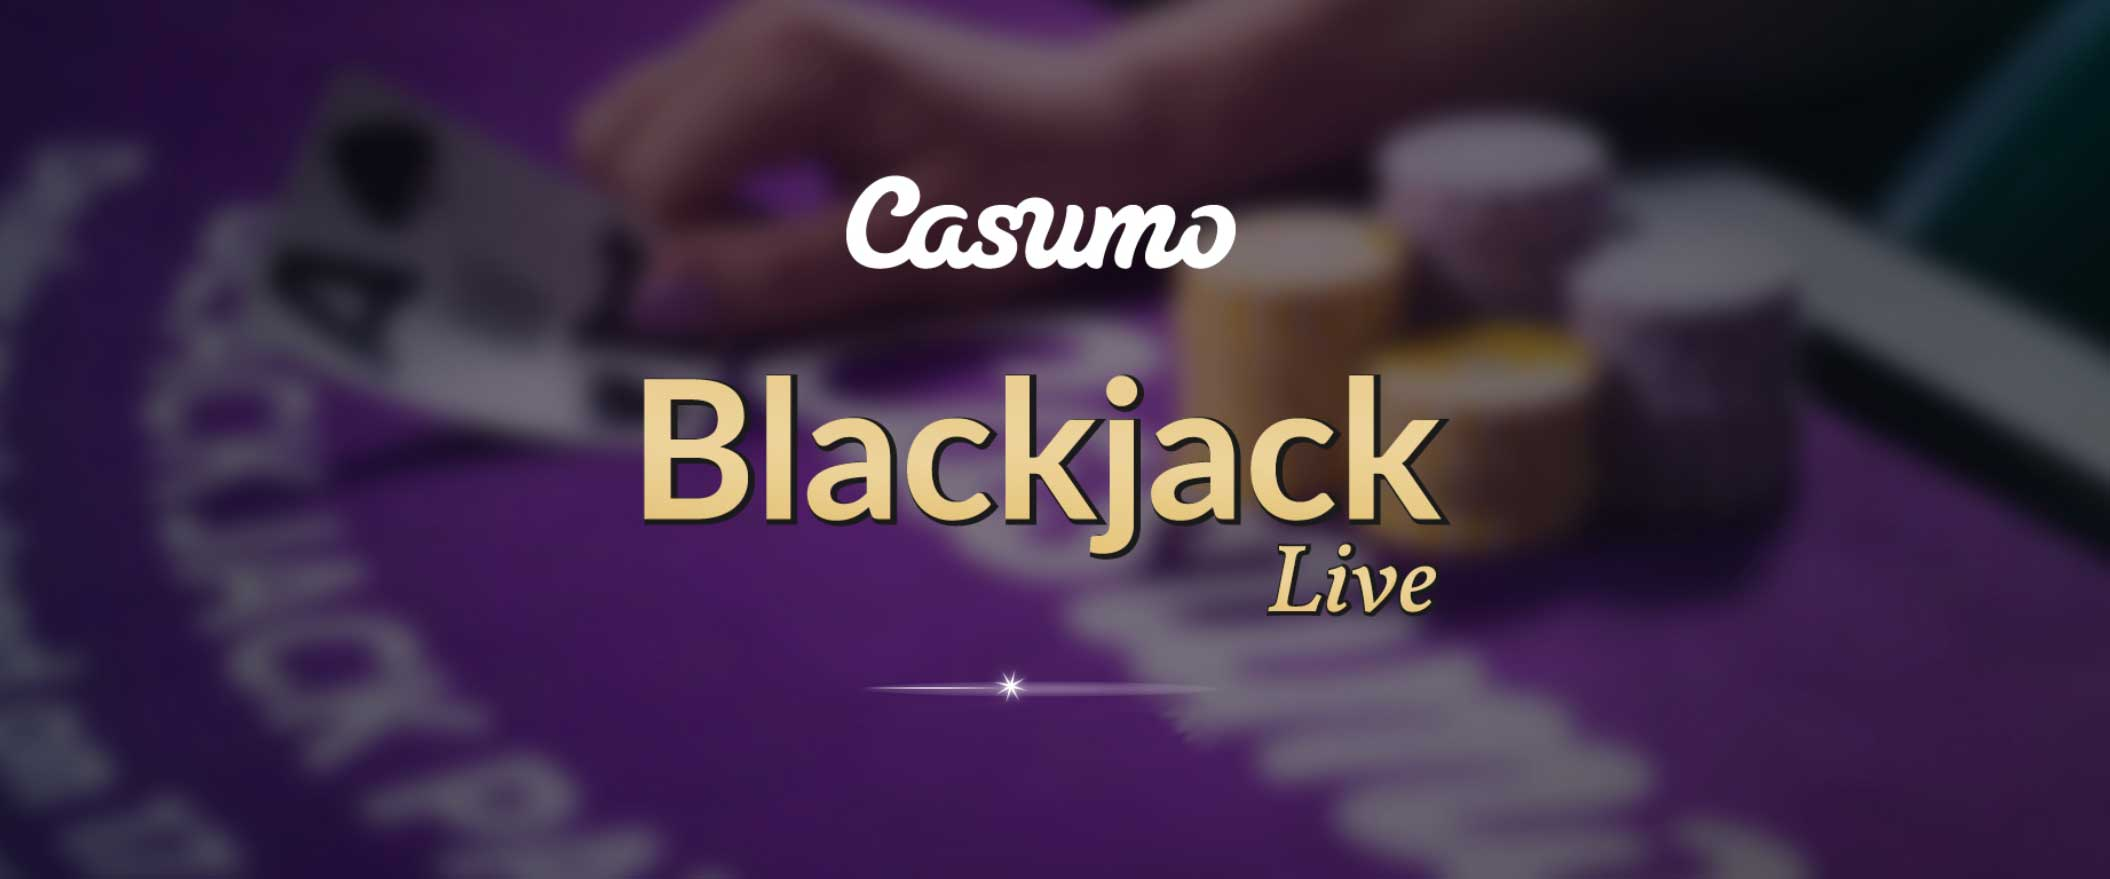 Blackjack live Casino Casumo